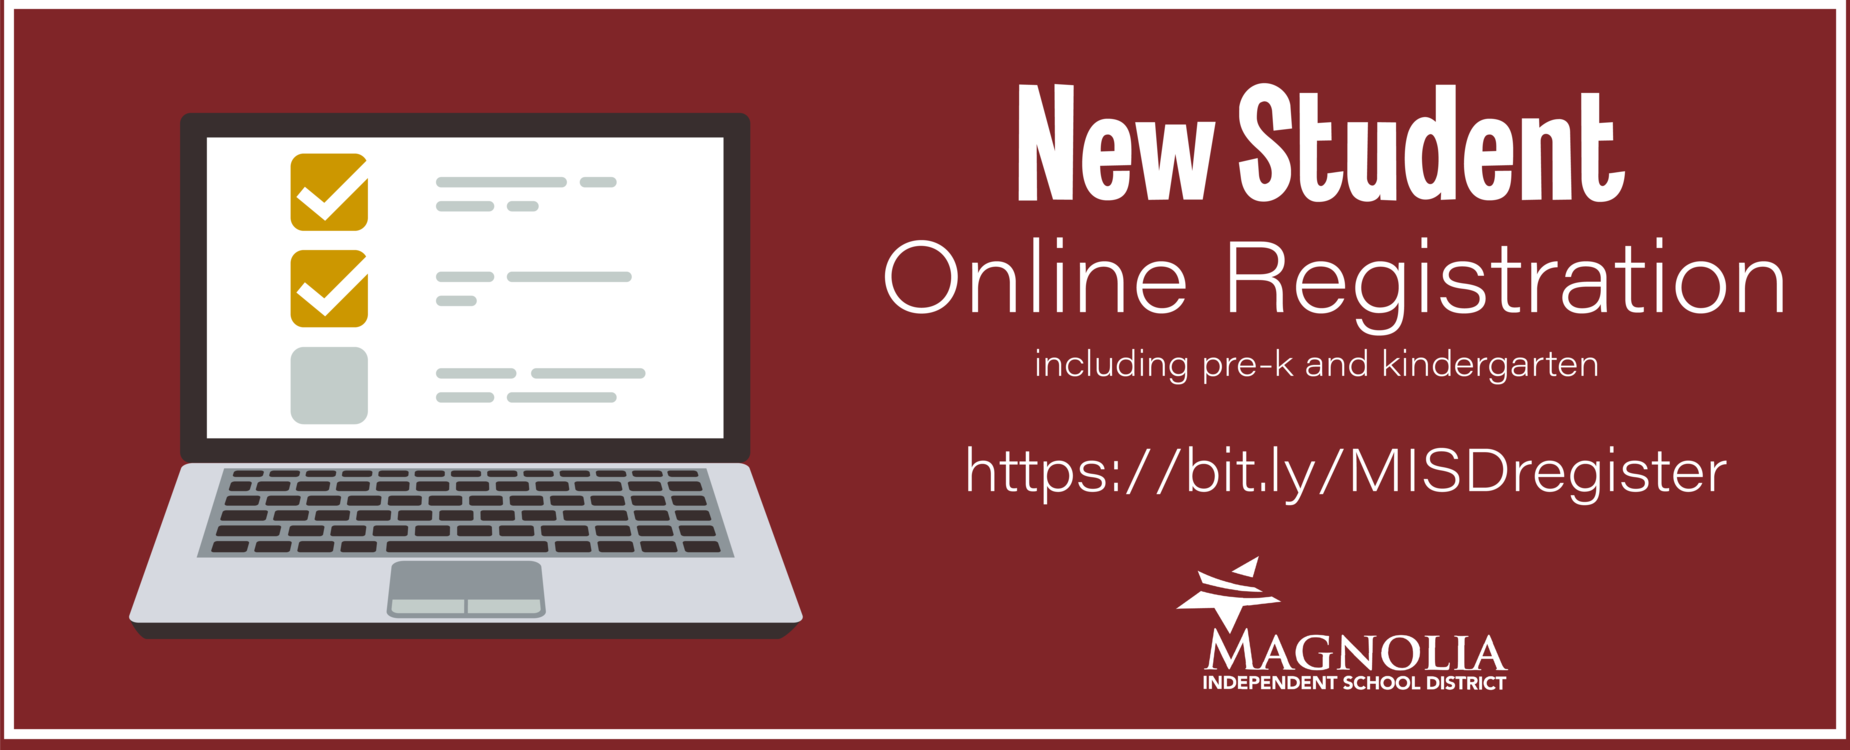 New to Magnolia ISD? Click on the image to register your student/s today.